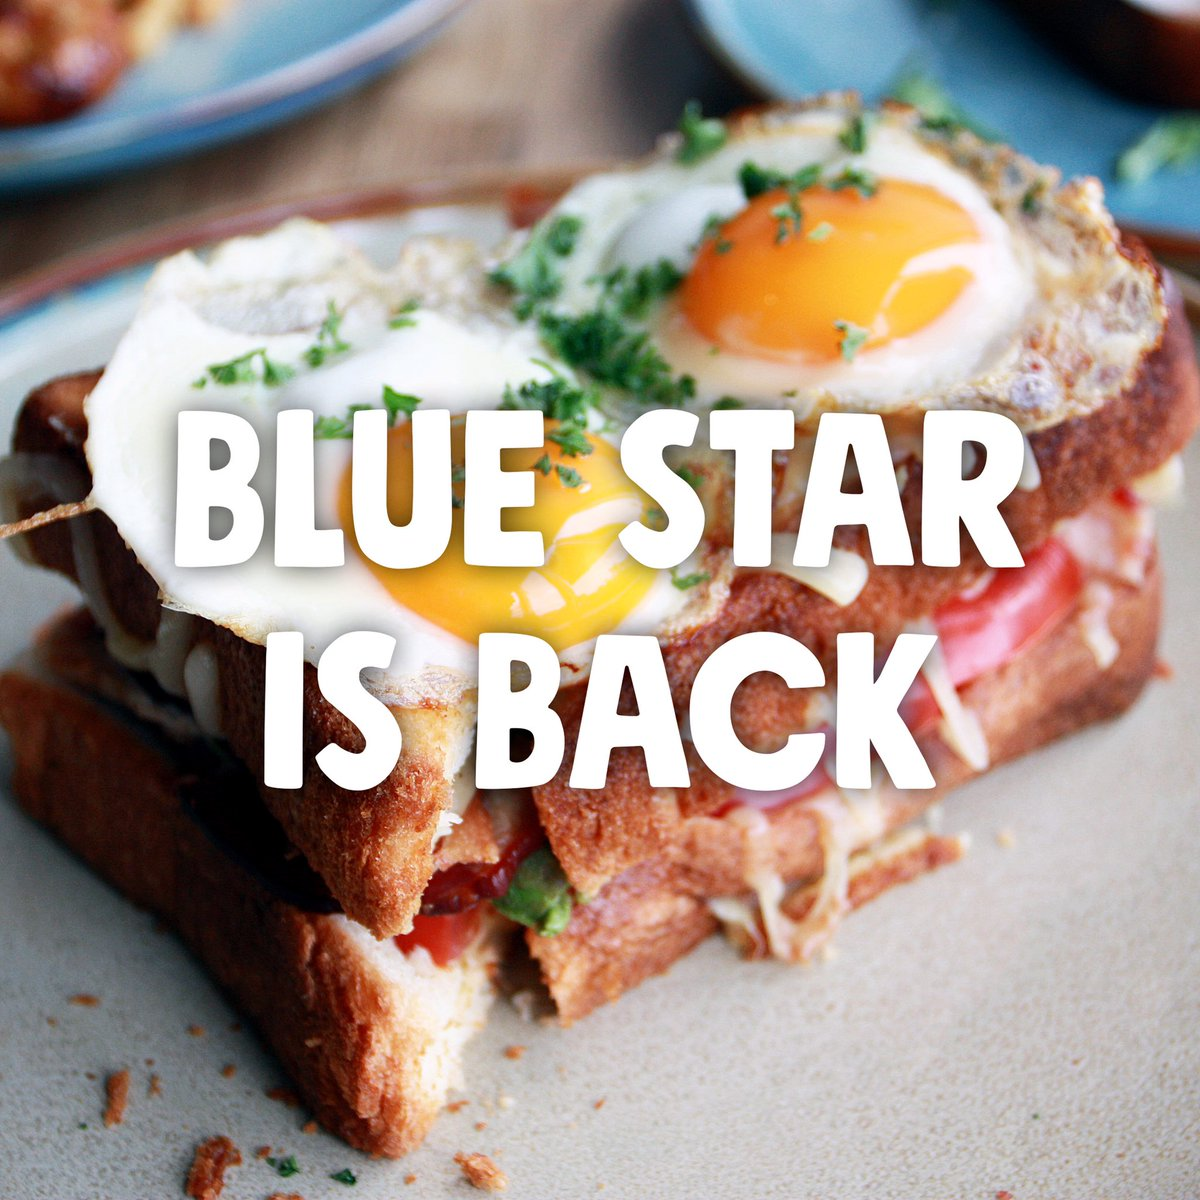 Blue Star is BACK! 💙  We reopen at 8am for sitdown service 7 days a week! Some new menu items and familiar faces - we can't wait to see you! #yyc #yycreopen https://t.co/b5tu03SnBu